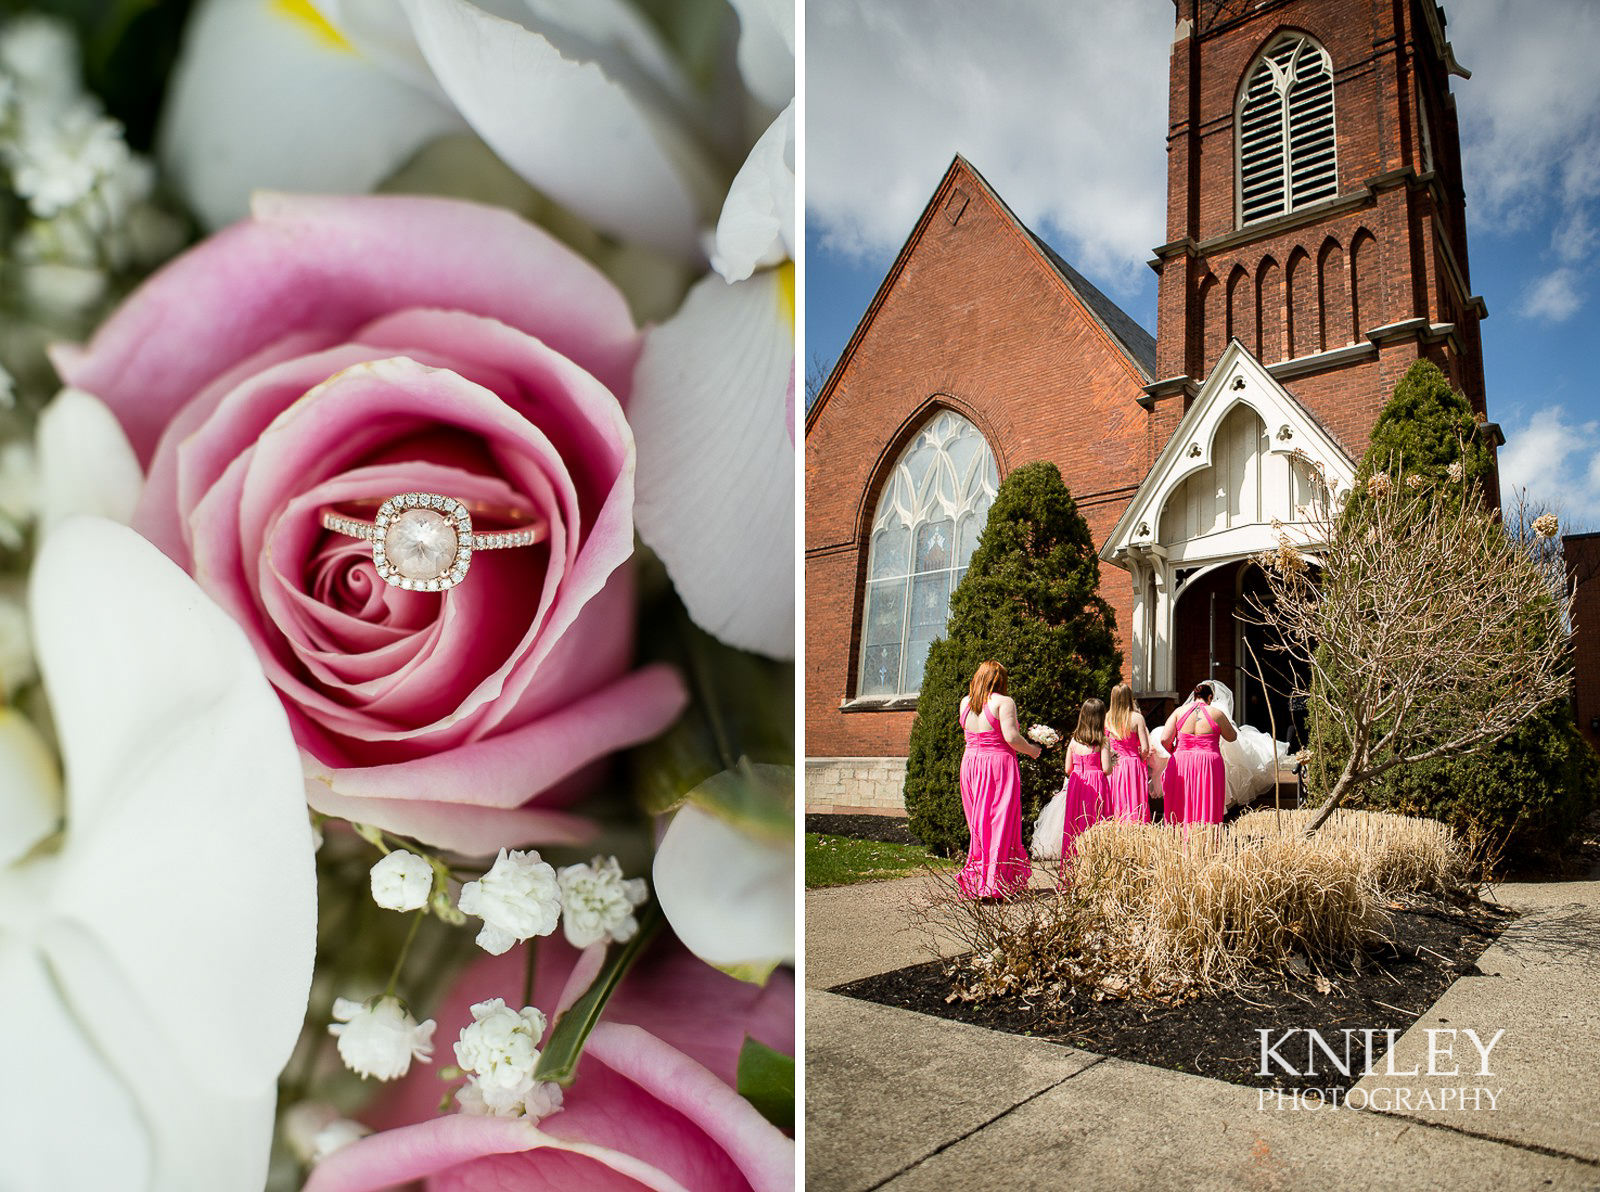 027b - Westminster Chapel - Rochester NY wedding photo - Kniley Photography.jpg